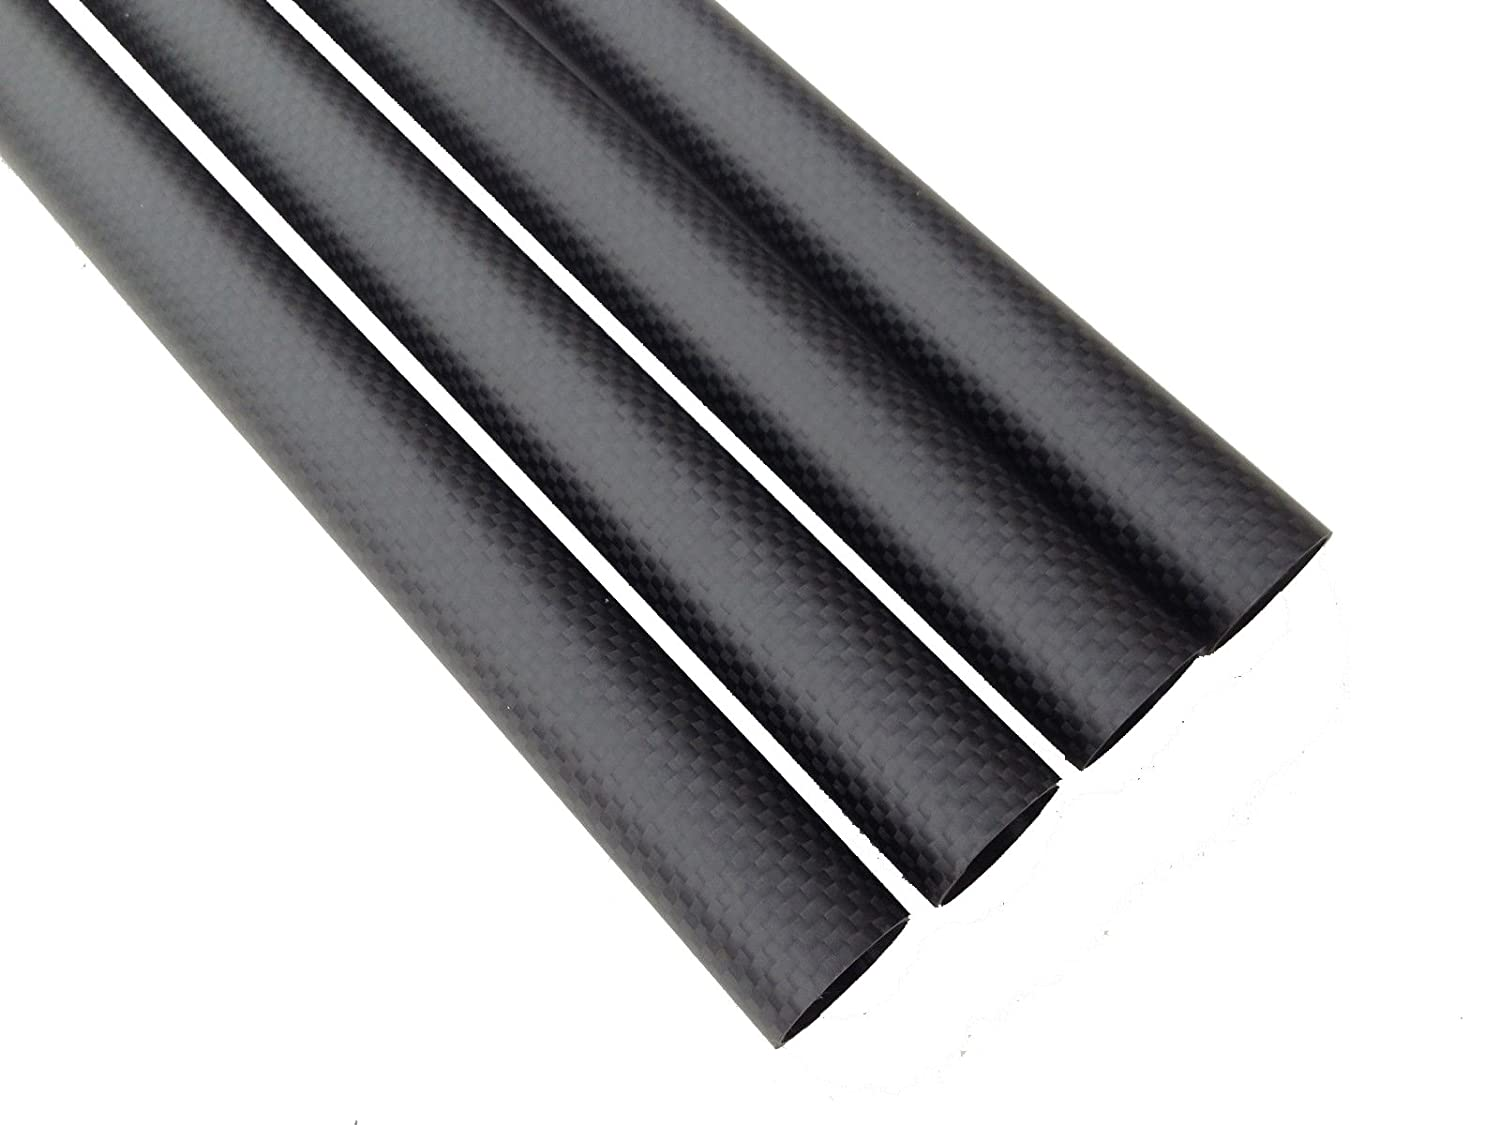 Abester Carbon Fiber Tube ID 7mm x OD 9mm x 500mm Long 3K Matt Surface